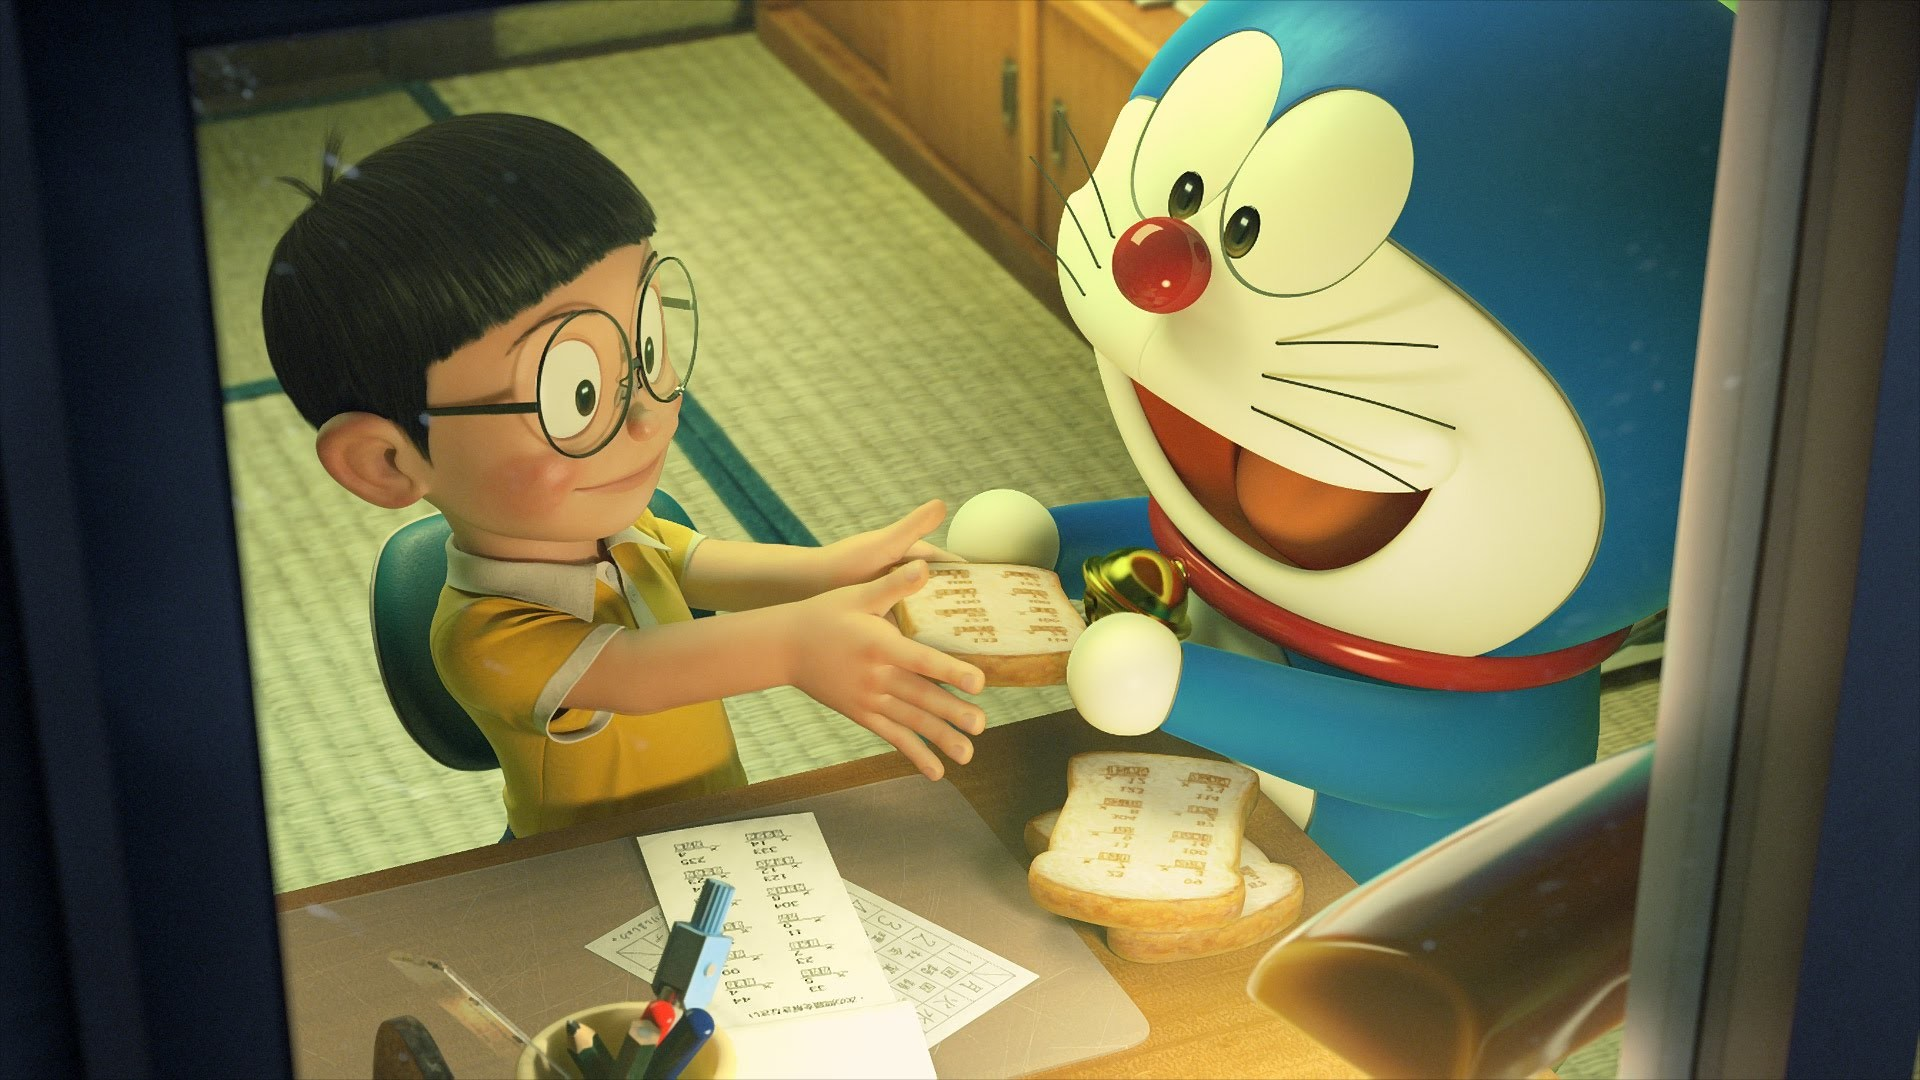 Stand By Me Doraemon 1080p Download Trailer Terrock